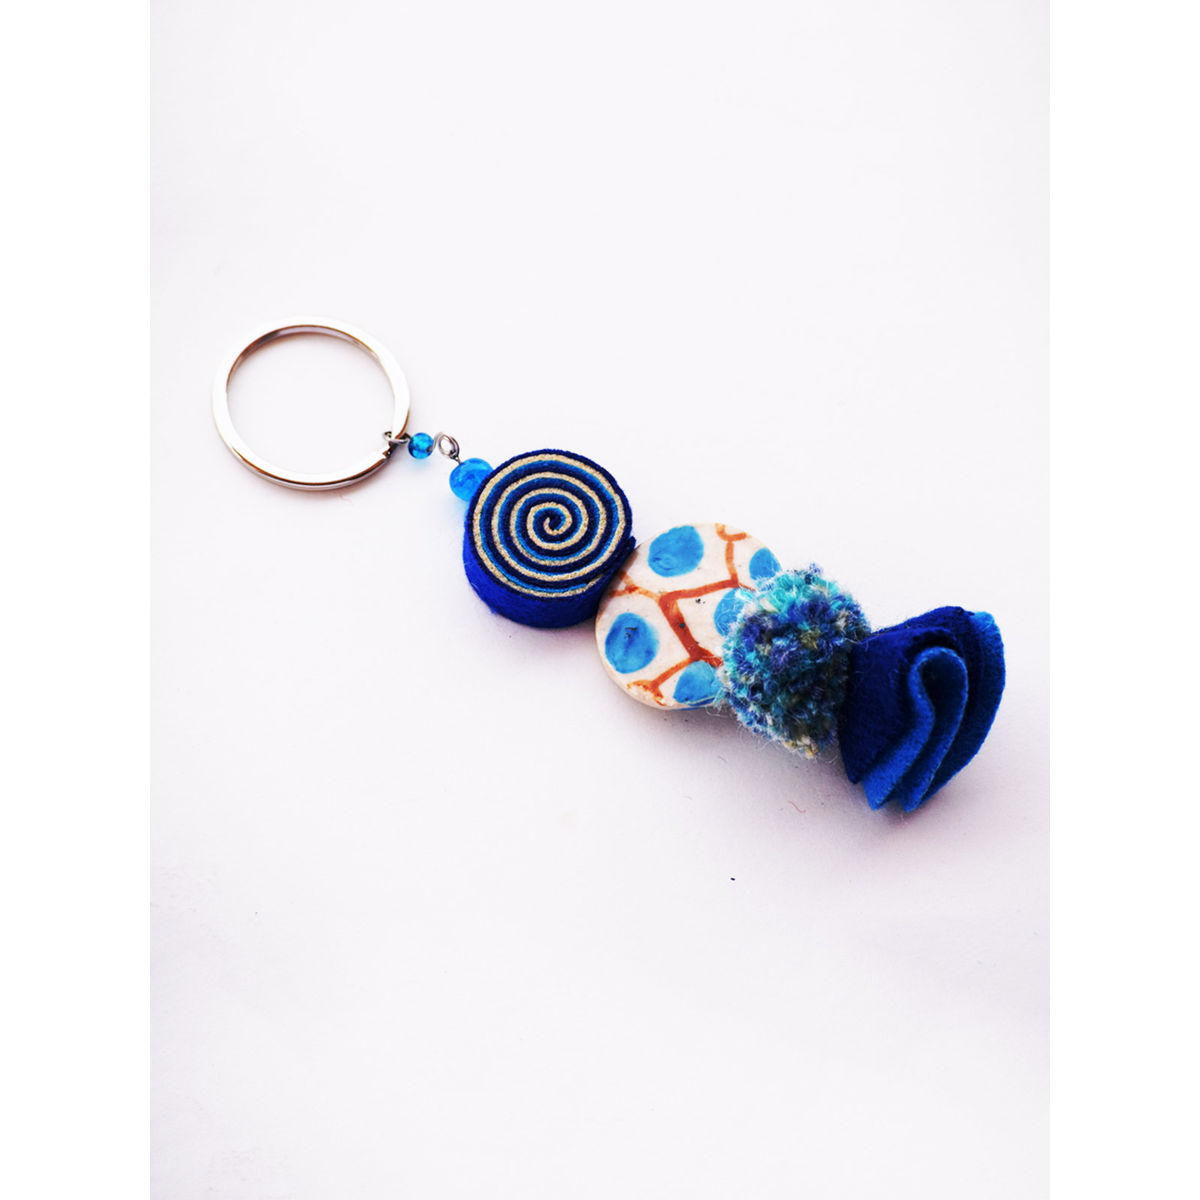 Psychedelic Doll Keychain - Blue